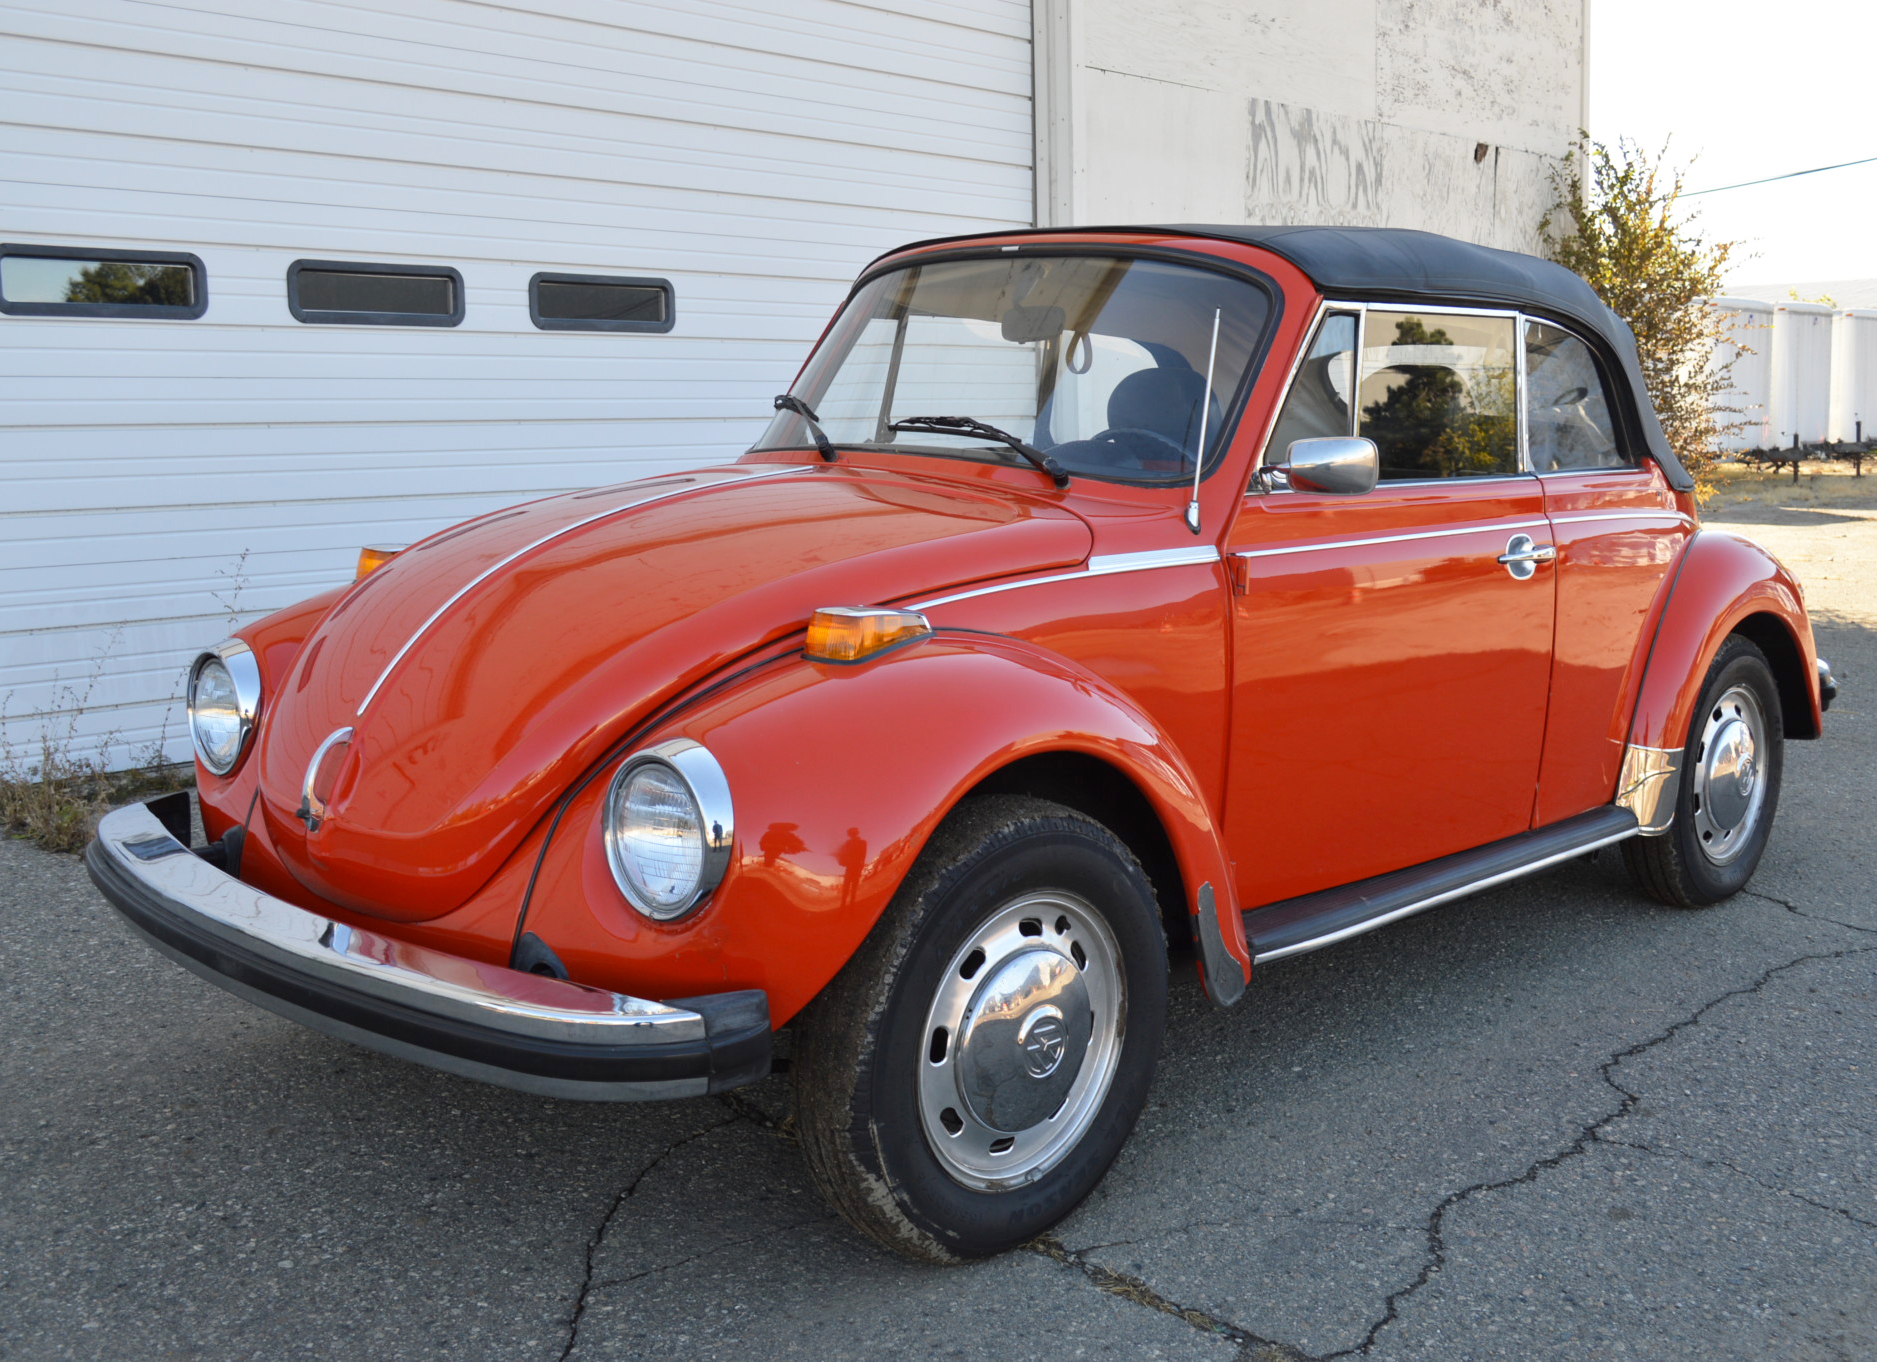 hight resolution of no reserve 1978 volkswagen super beetle convertible for sale on bat auctions sold for 8 000 on november 26 2018 lot 14 355 bring a trailer